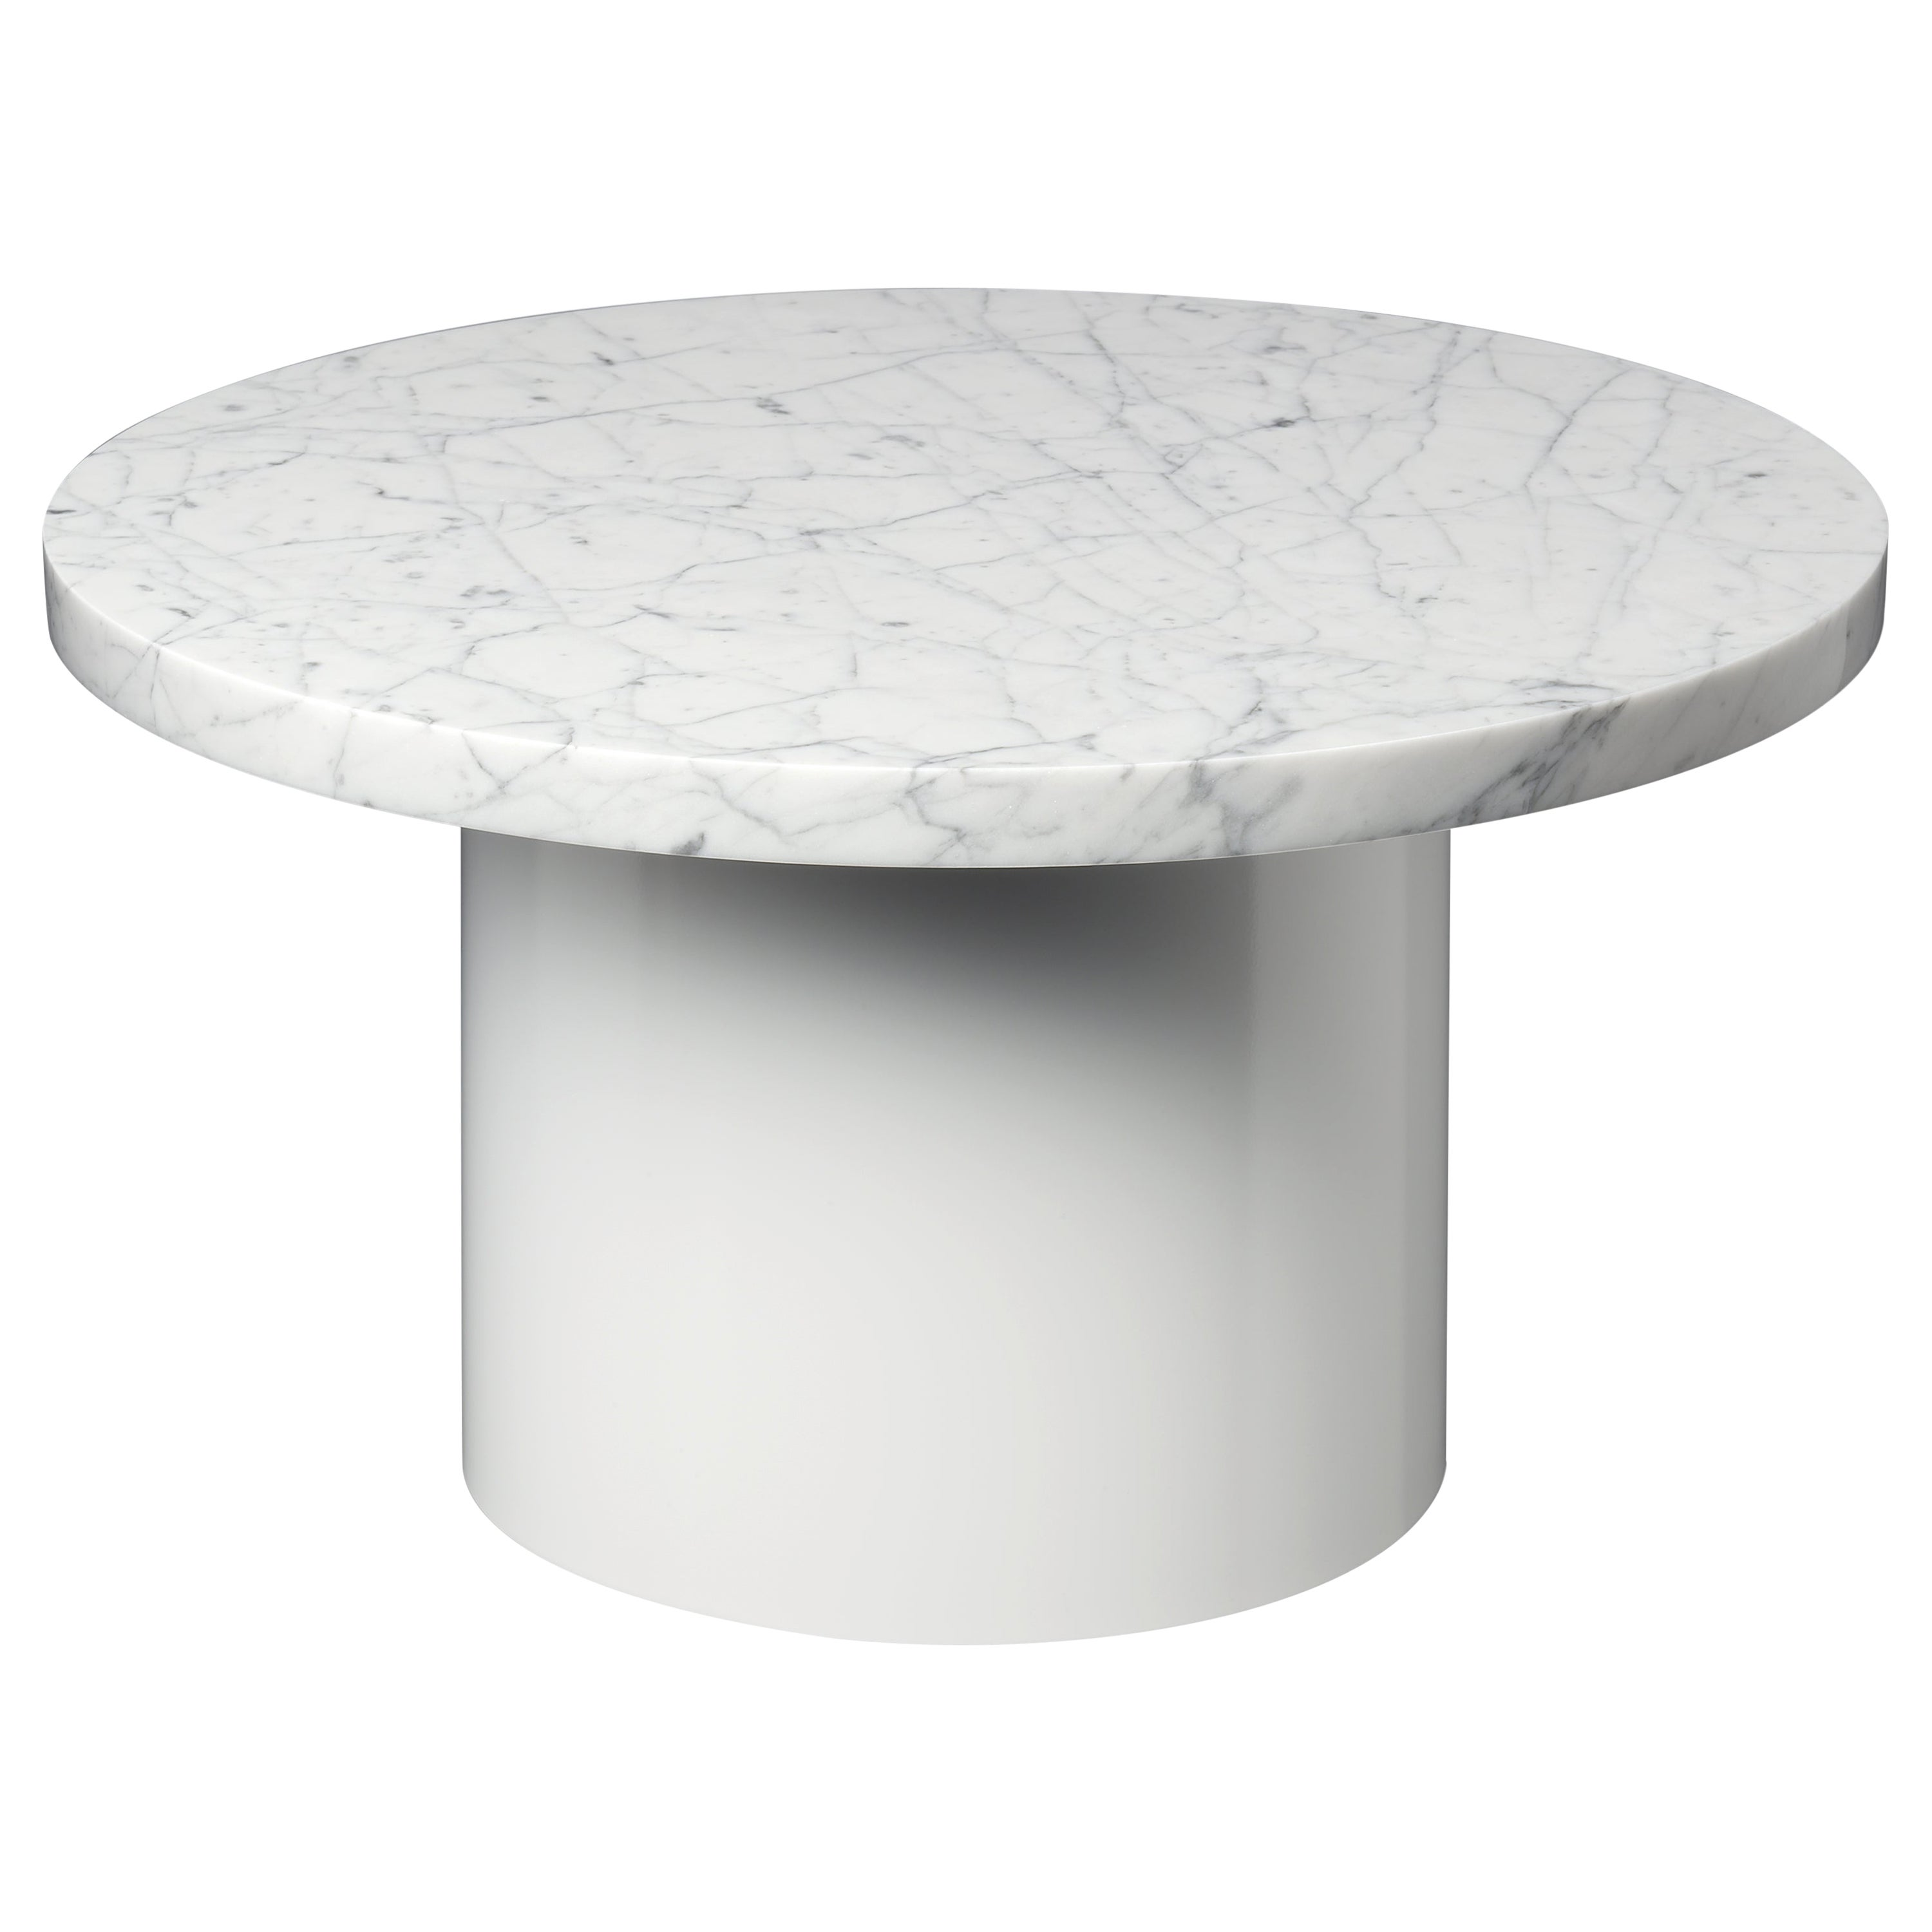 e15 Enoki Side Table with White Base by Philipp Mainzer